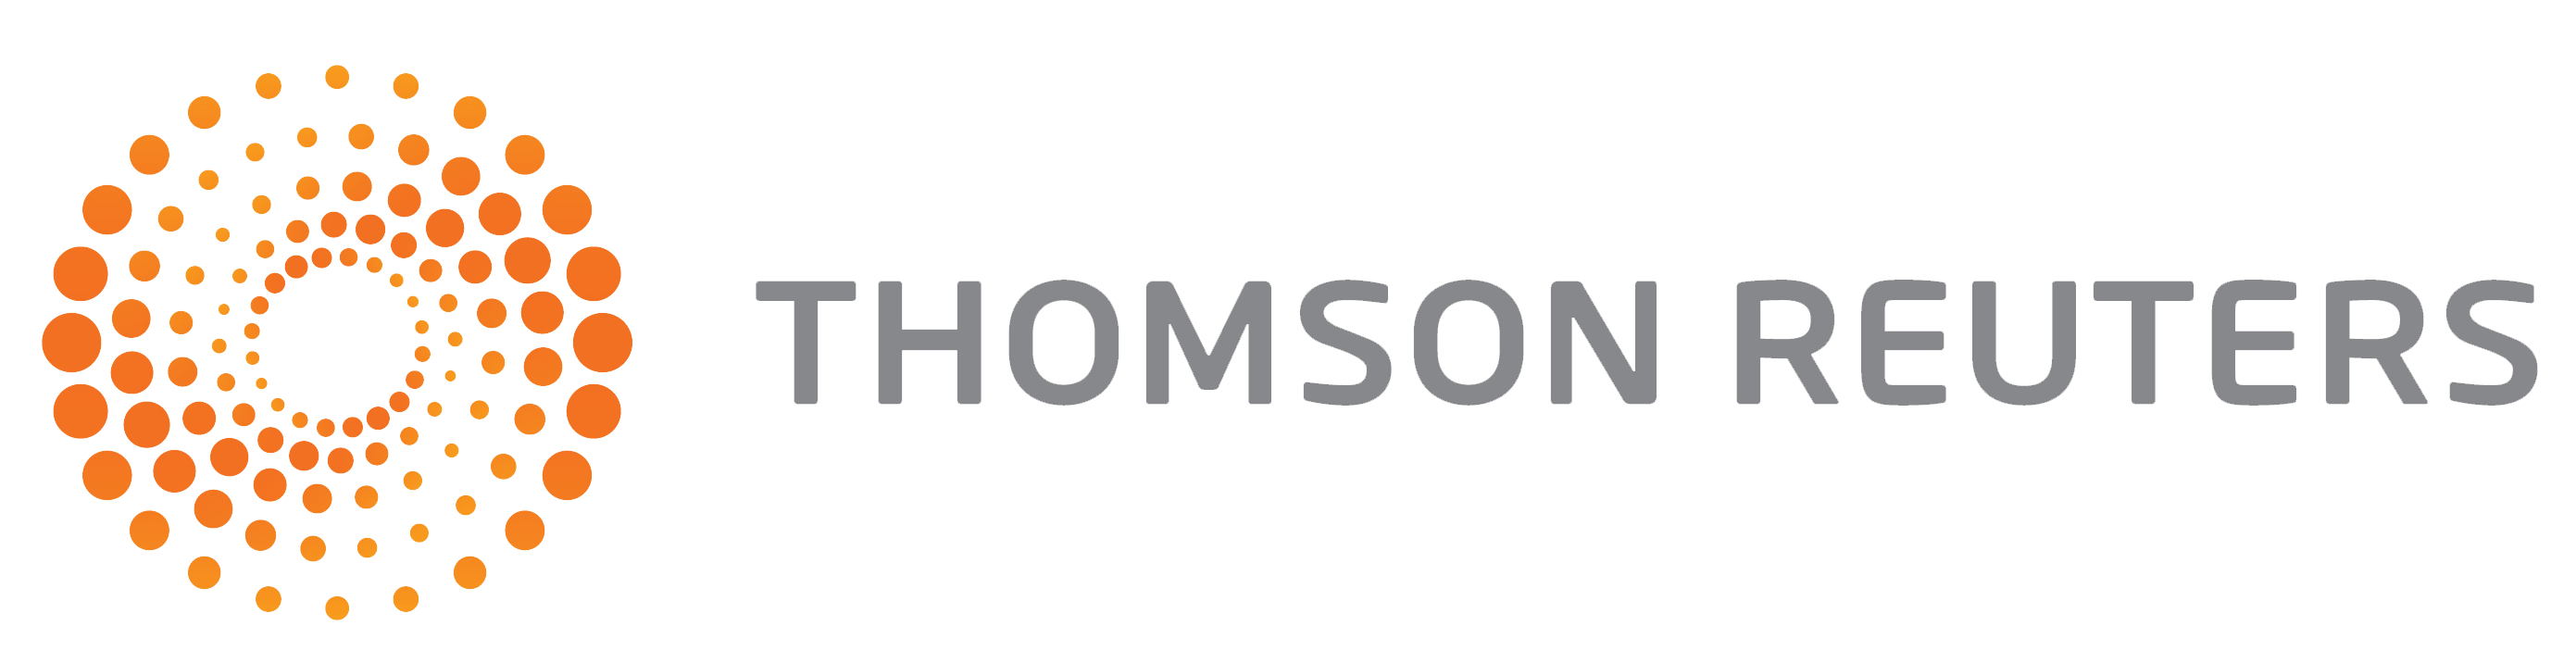 Thomson Reuters Holdings Inc.